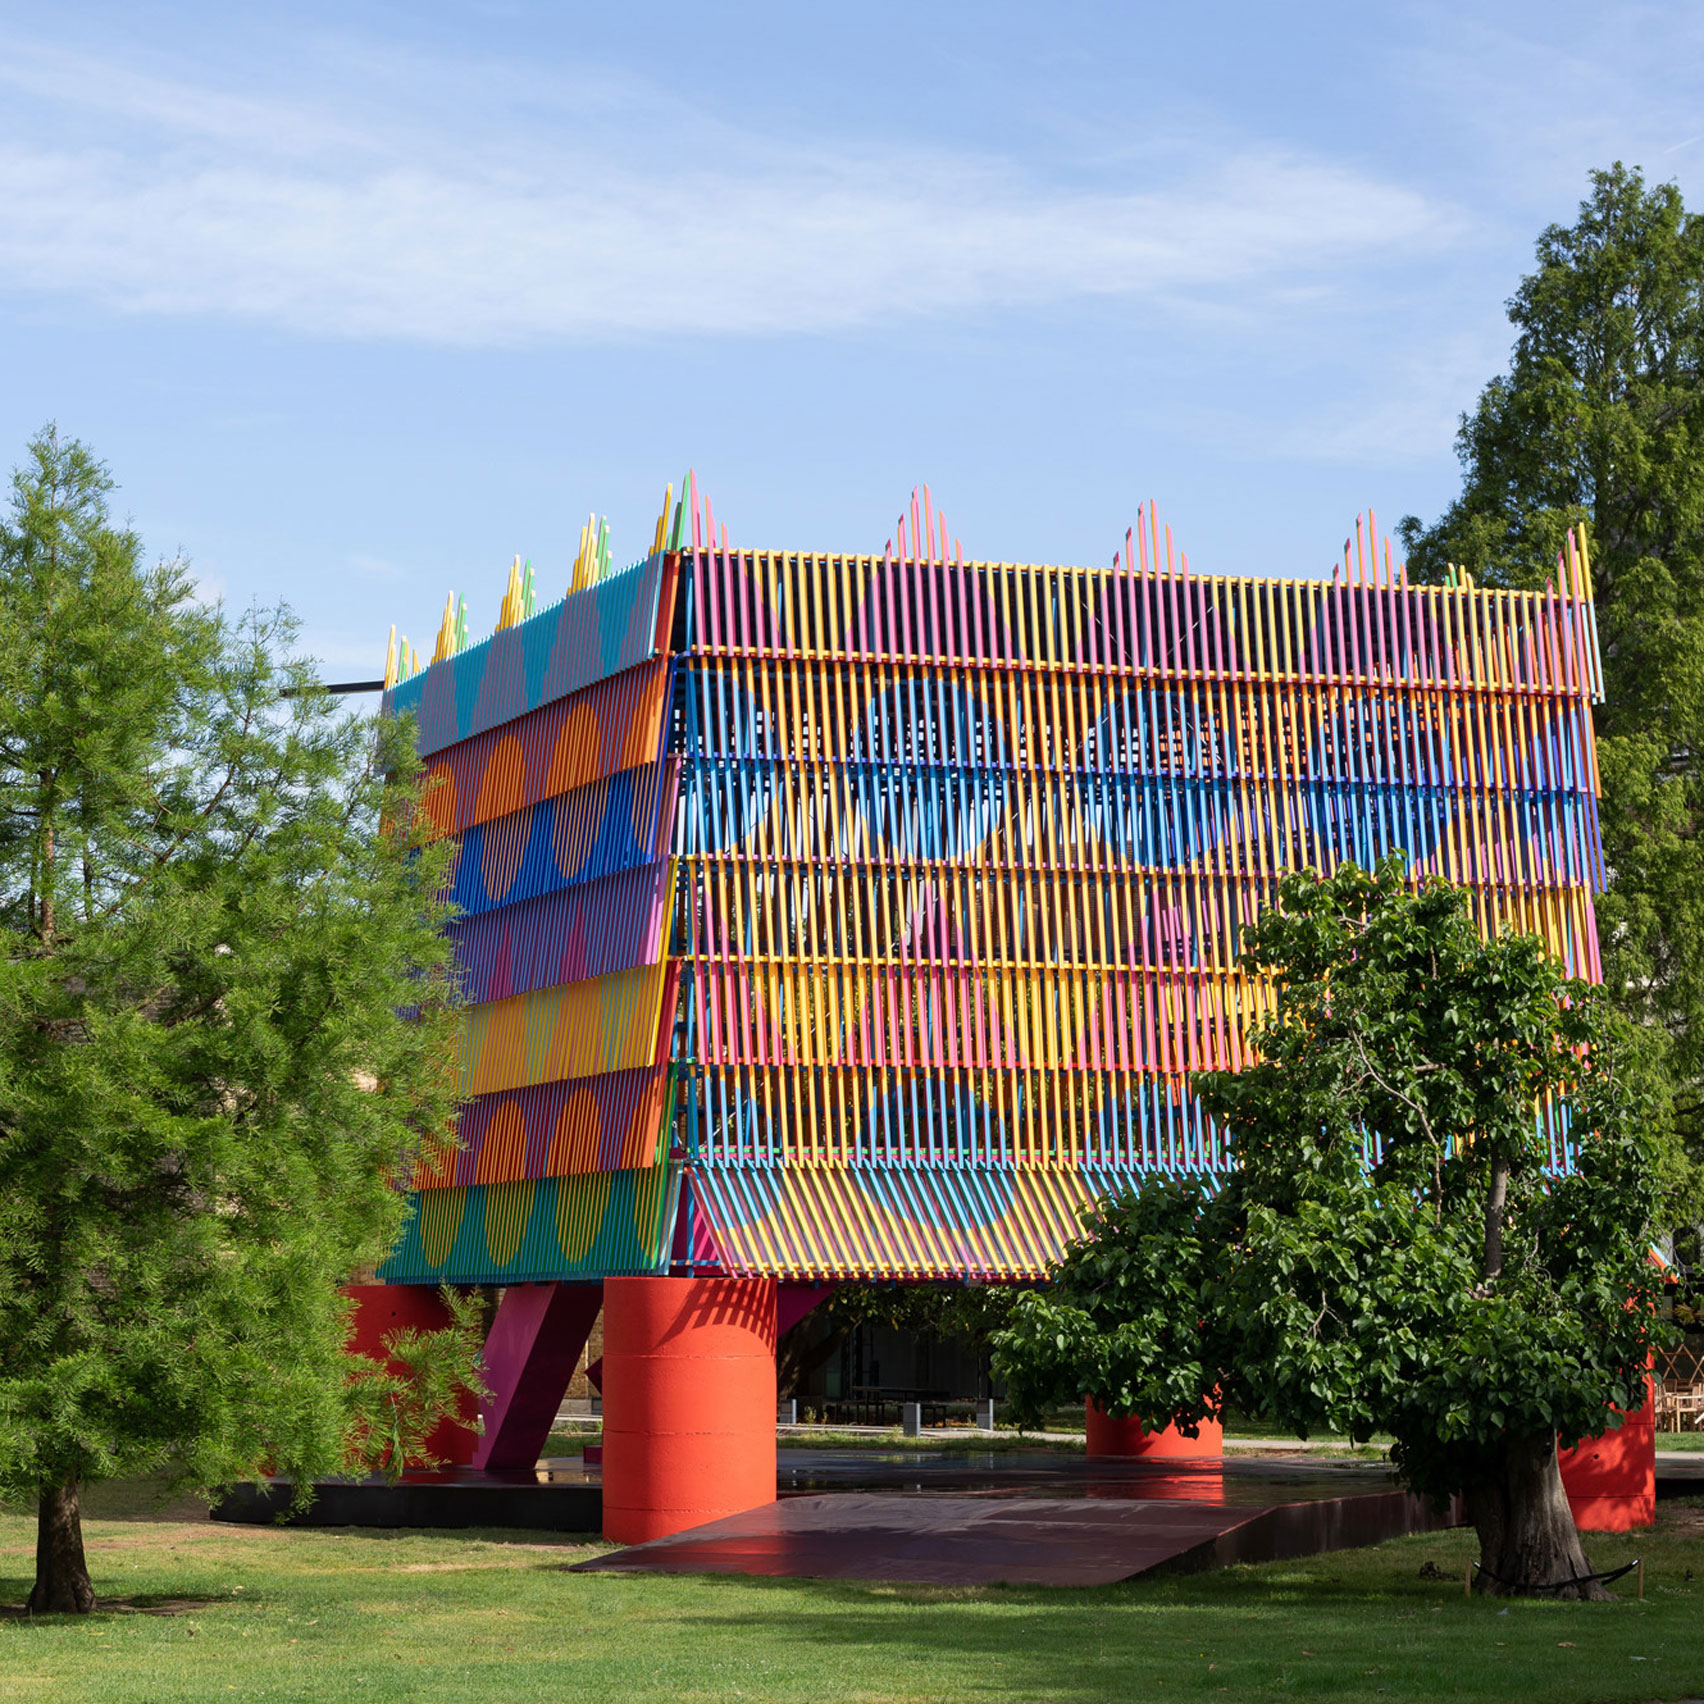 The Colour Palace, UK, by Yinka Ilori and Pricegore